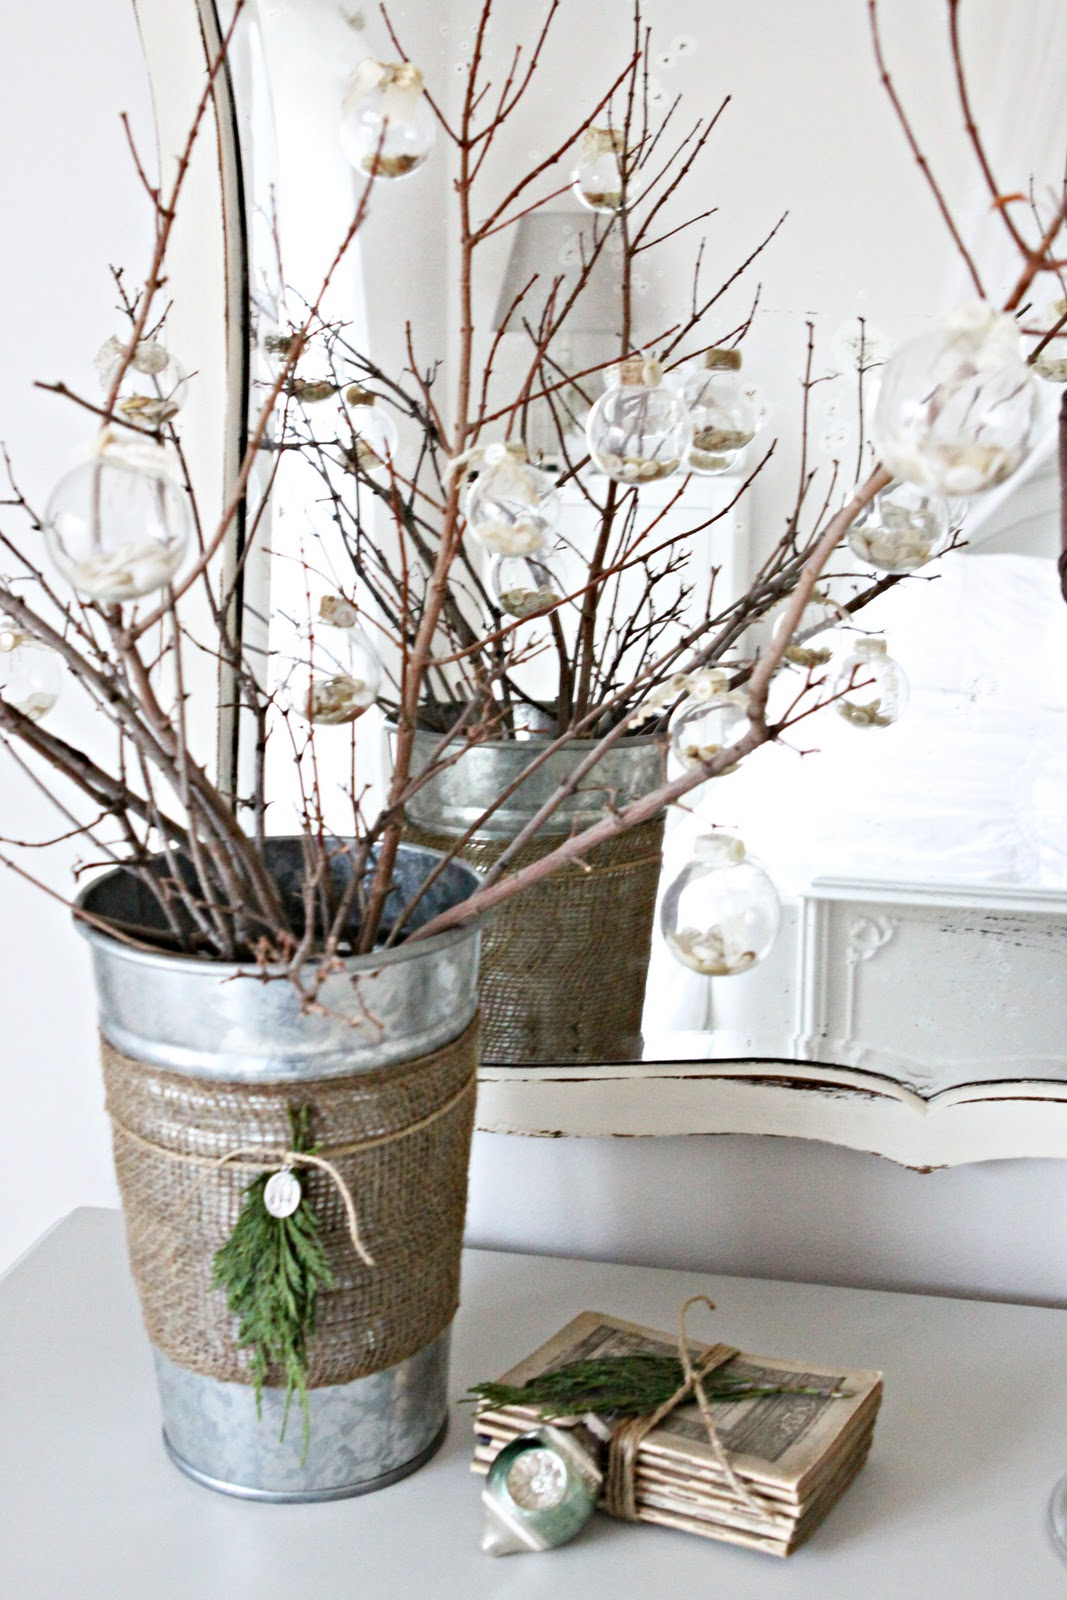 Branches with Ornaments in a Rustic Tin Burlap Bucket for the Holidays